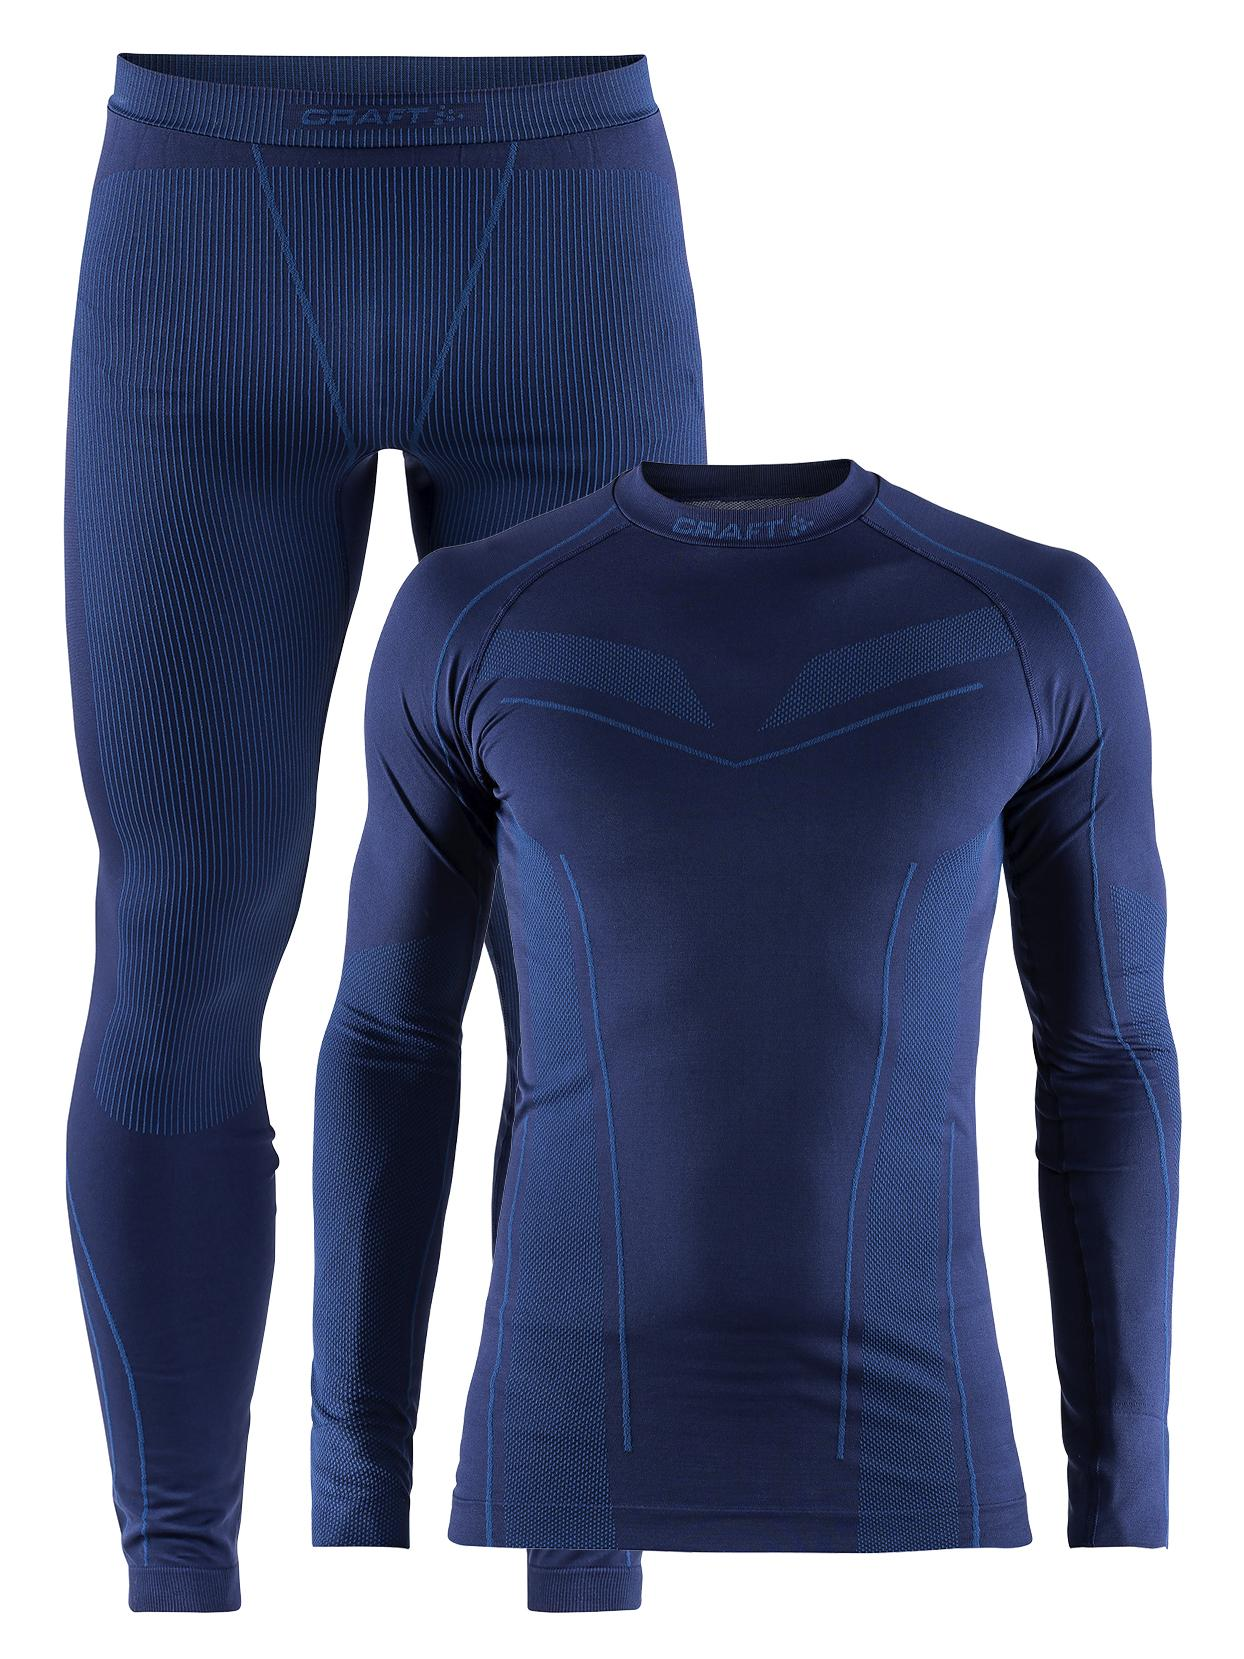 Baselayer Seamless Zone Set Man M (1391 MARITIME) -> /media/download/1905330_s_1391-3137.jpg